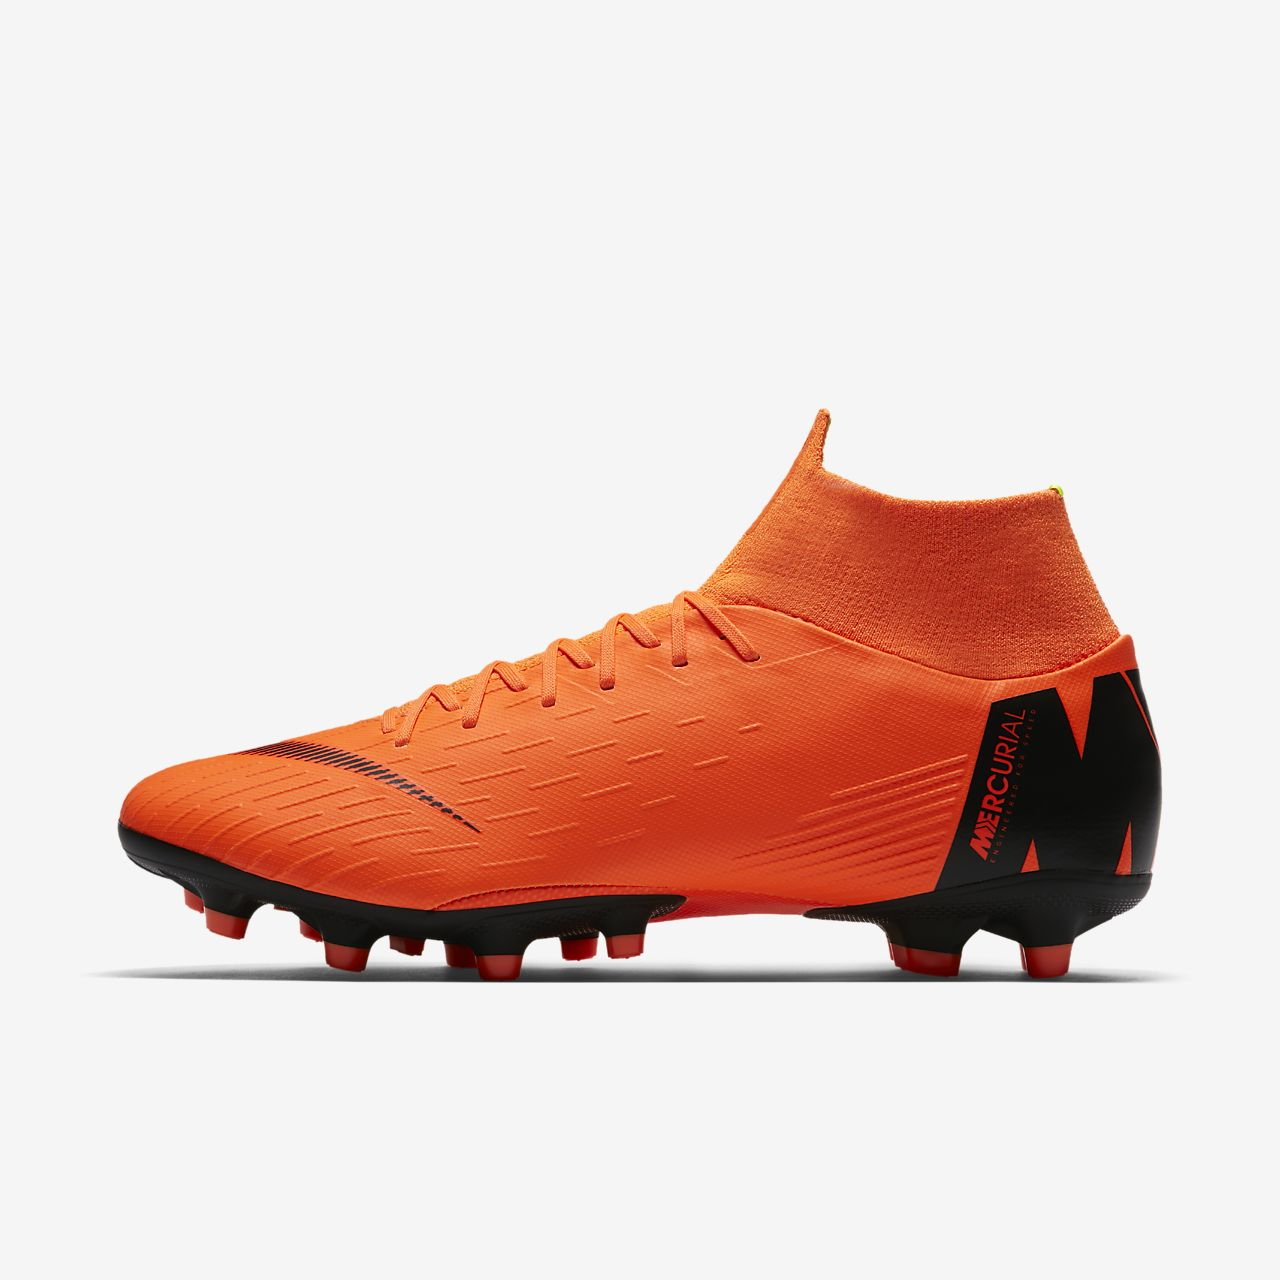 ... Nike Mercurial Superfly VI Pro AG-PRO Artificial-Grass Football Boot